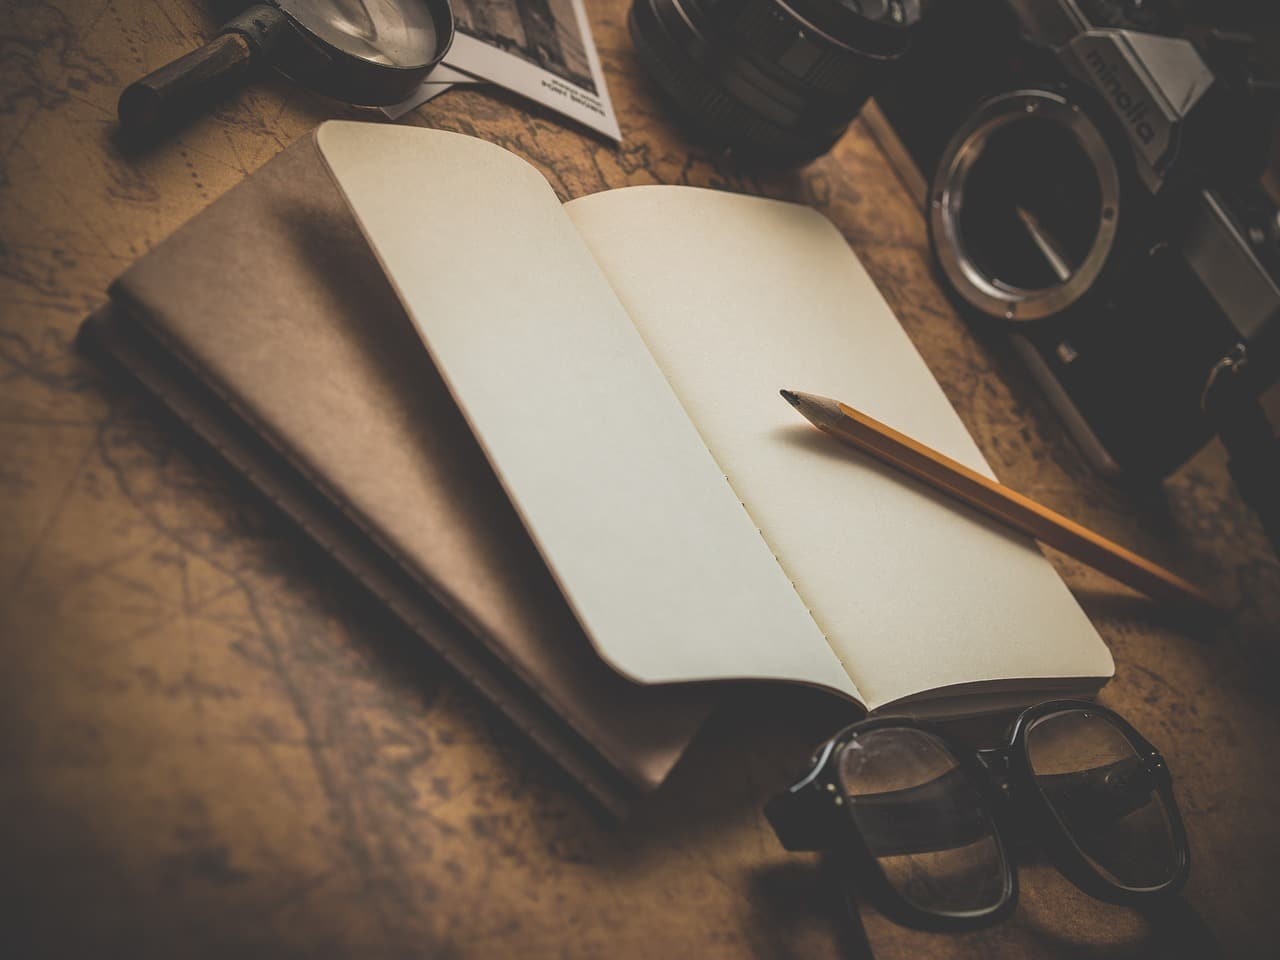 Best Notebooks for Writing